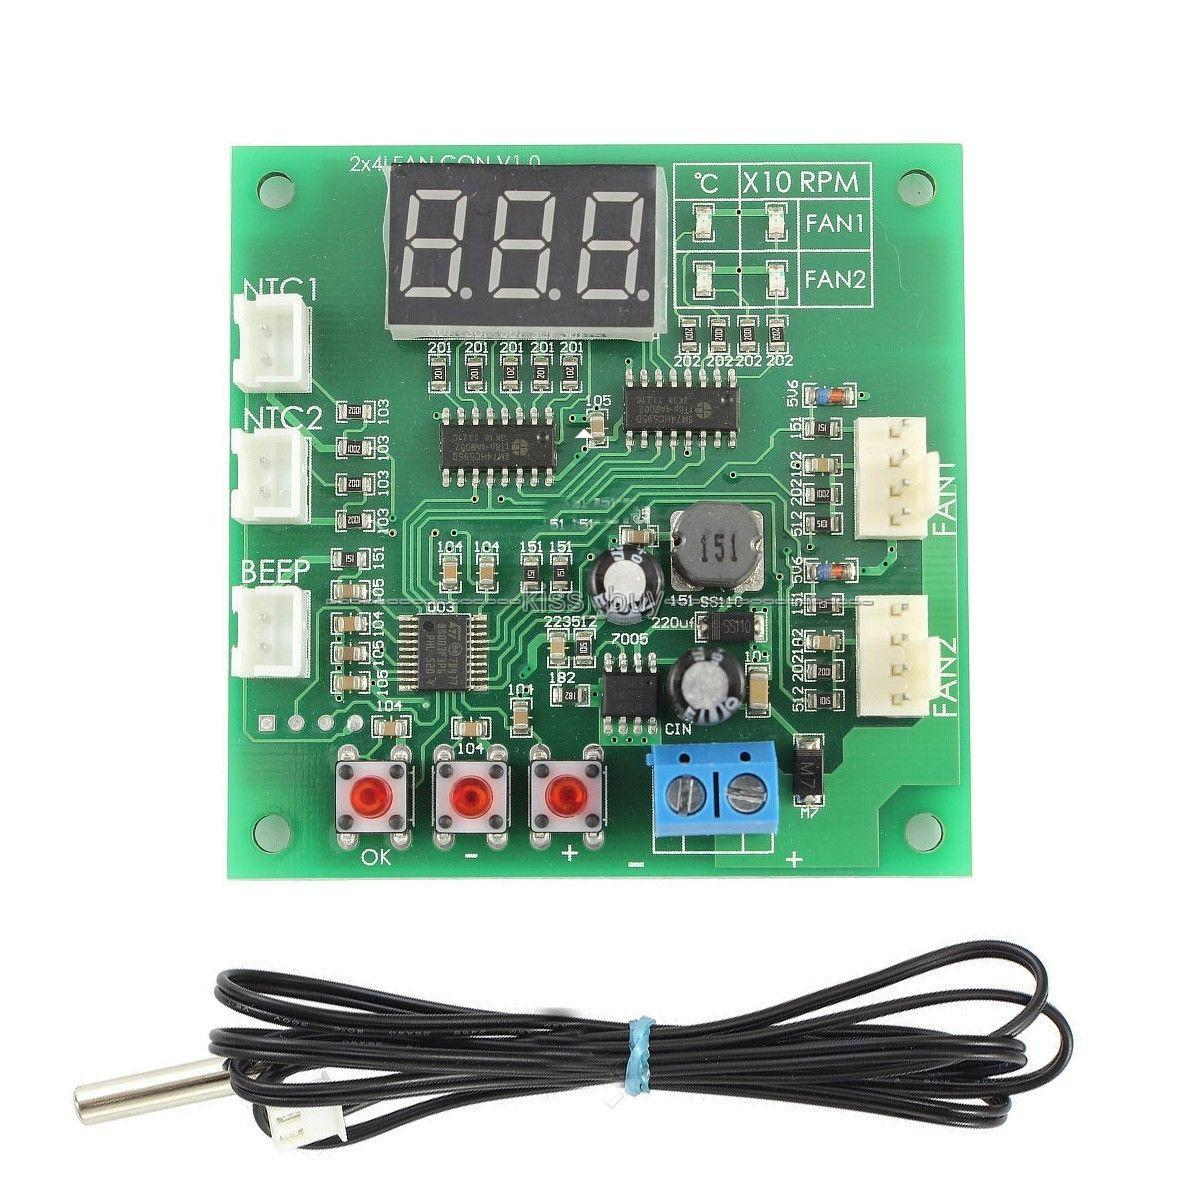 hight resolution of 2019 fan thermostat governor 2 way 4 wire pwm dc 12v 24v 48v temperature speed with digital led dispaly from zhenyuan666 22 82 dhgate com